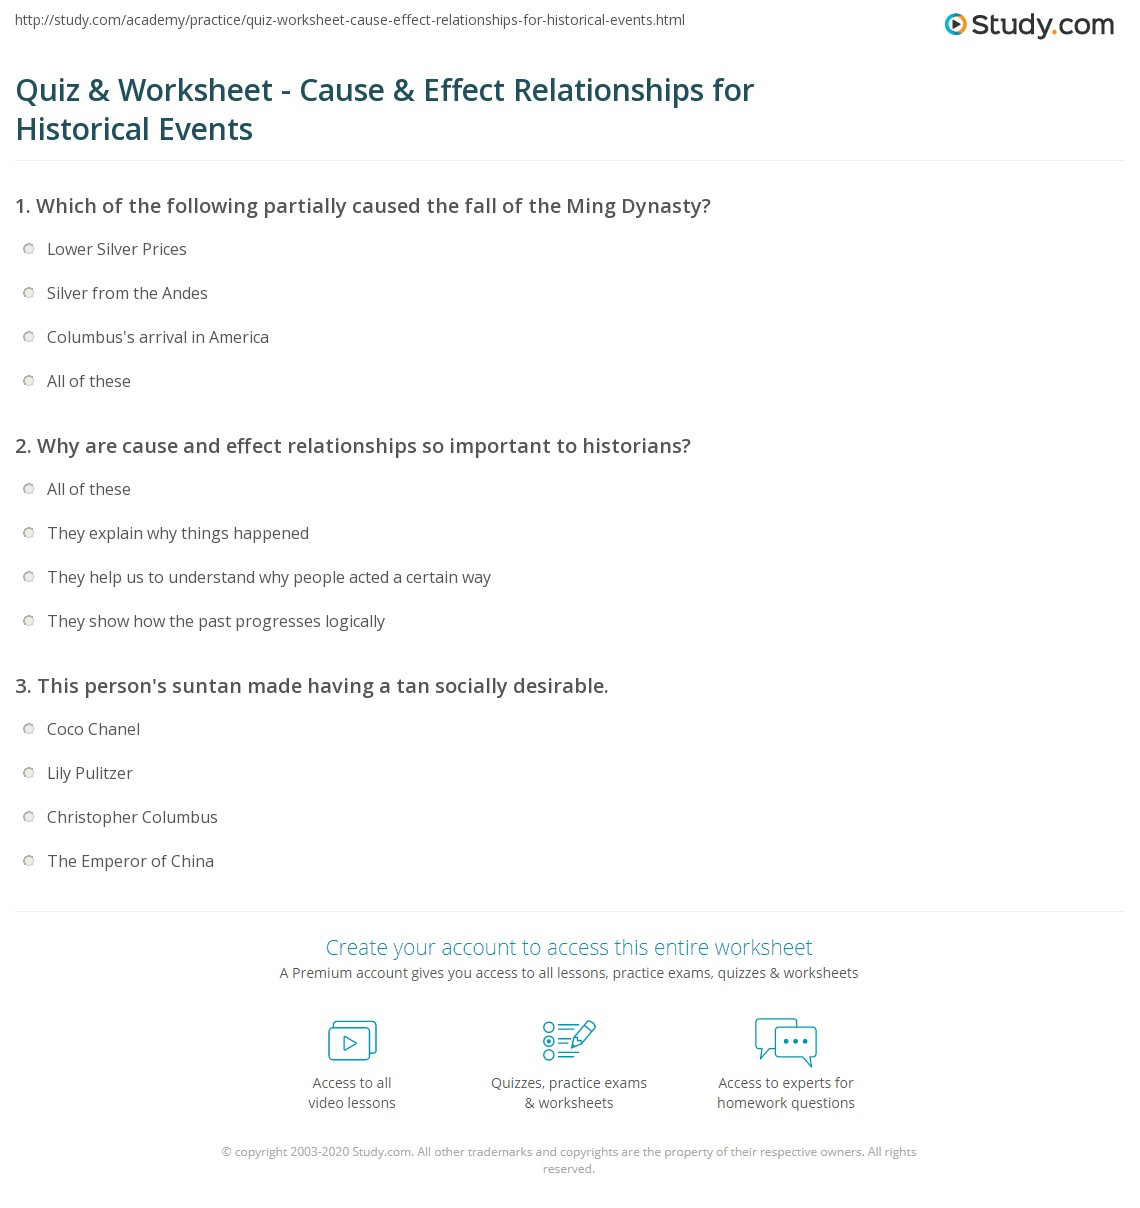 quiz worksheet cause effect relationships for historical print understanding history through cause and effect relationships worksheet